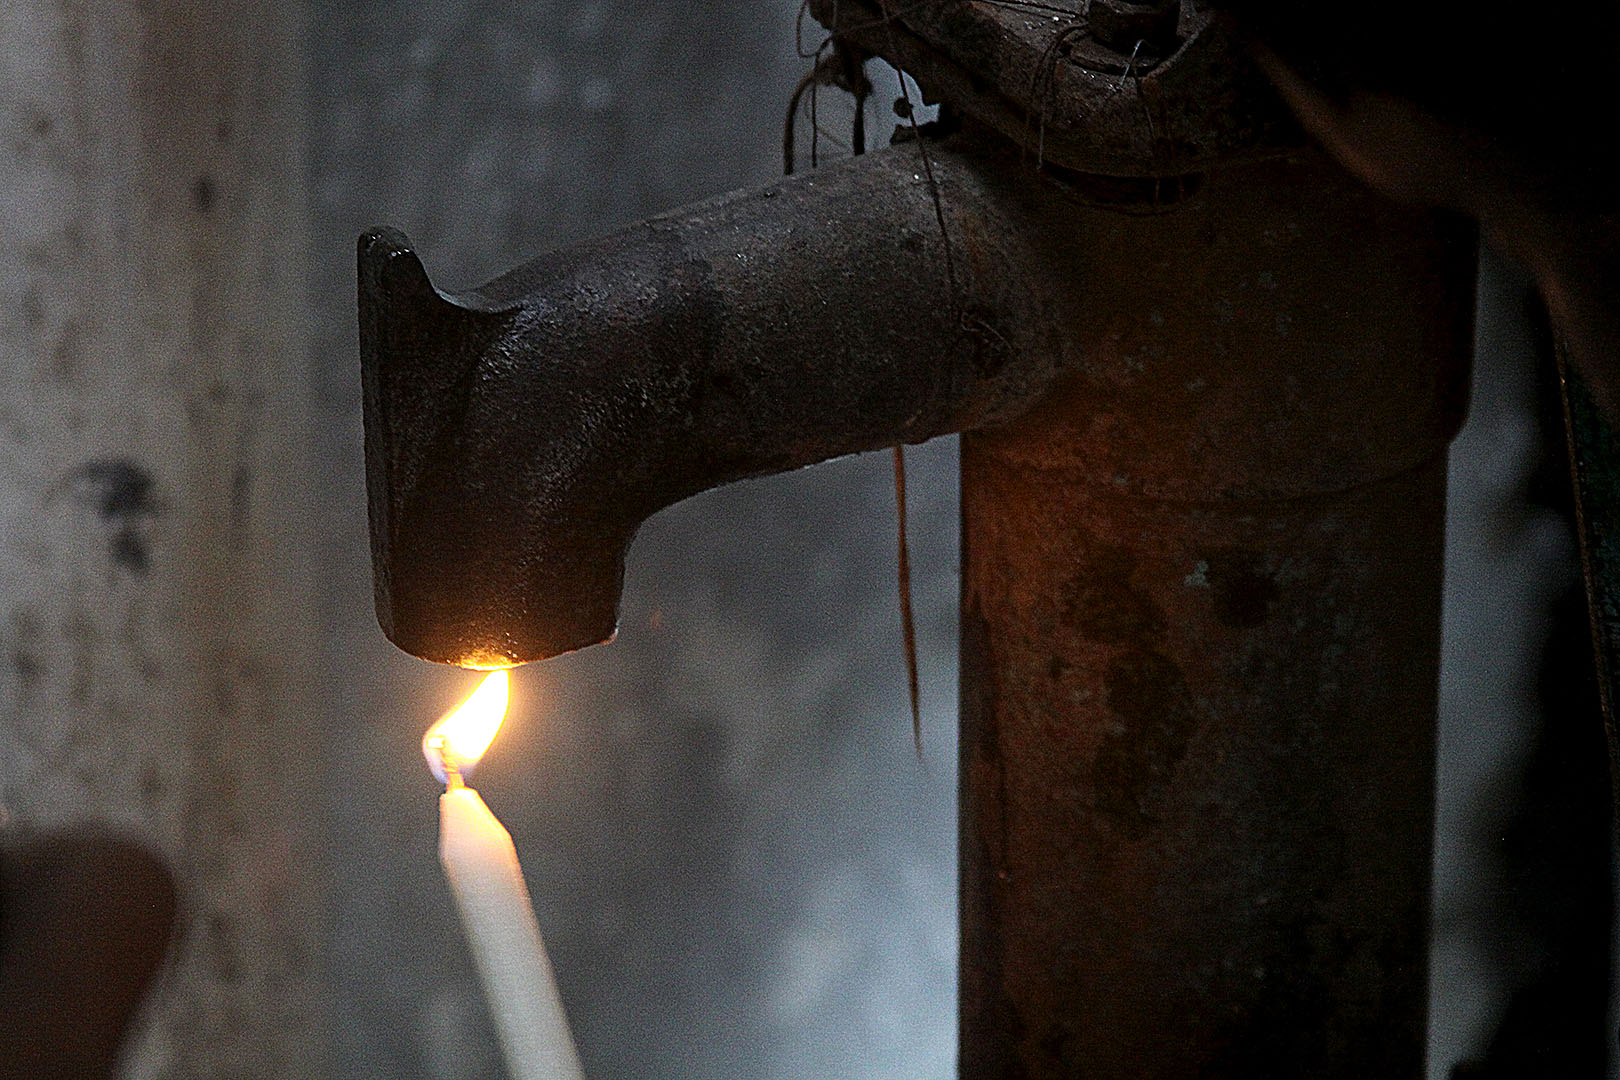 "When taking water samples, one step is ""flaming the faucet"" to kill germs clinging to the metal. Photograph by Zuhayr Reaz '16, who is doing fieldwork in Dhaka, Bangladesh, as part of his internship with WaterAid."